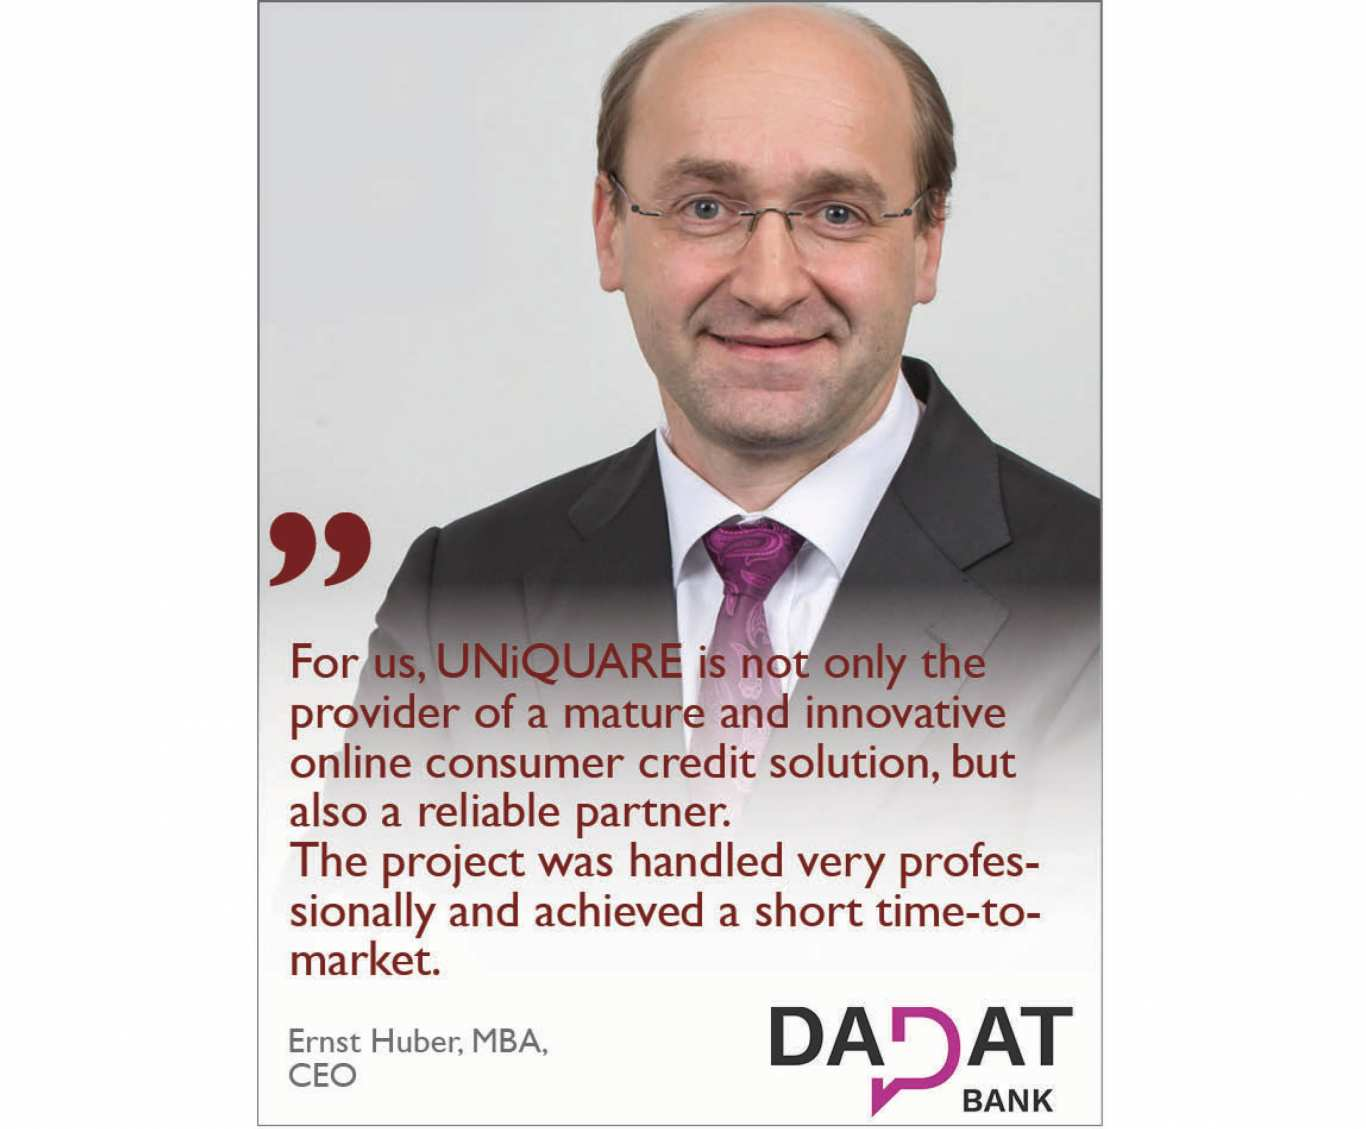 UNiQUARE customer DADAT Bank was voted the best direct bank in Austria